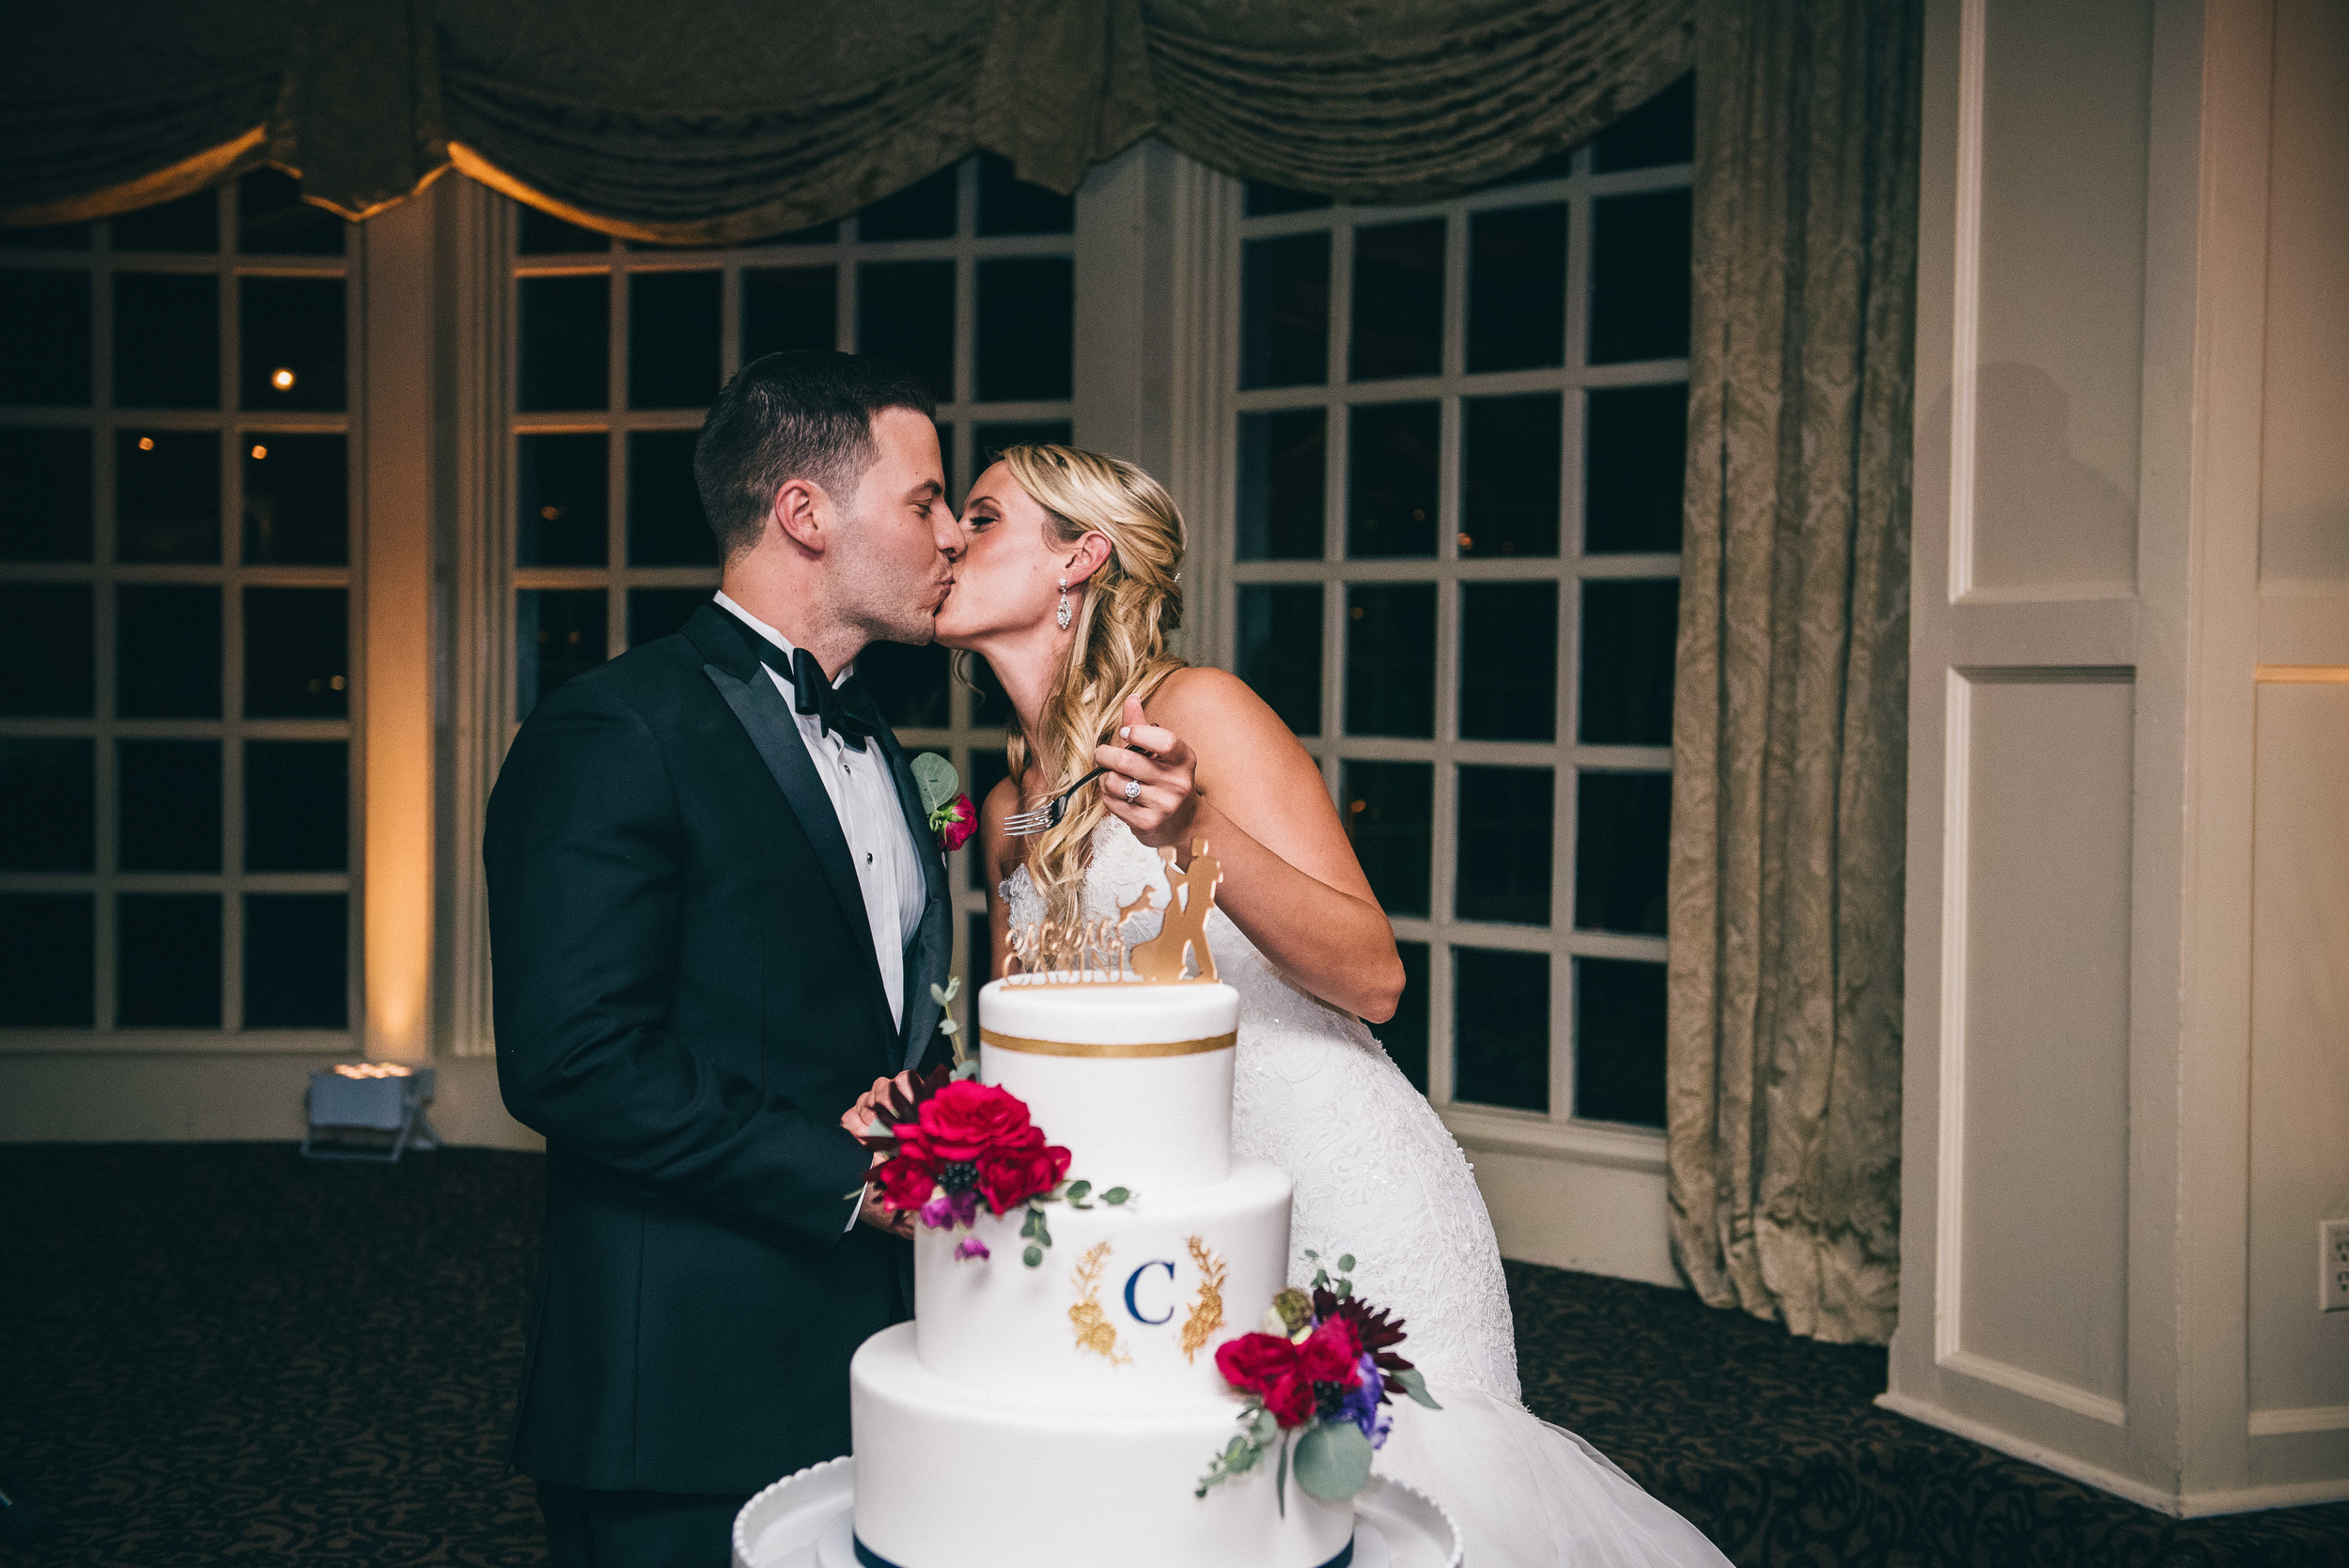 CT Wedding Inn at Longshore Amy Champagne Events Reception at Inn at Longshore Cake Cutting Kiss